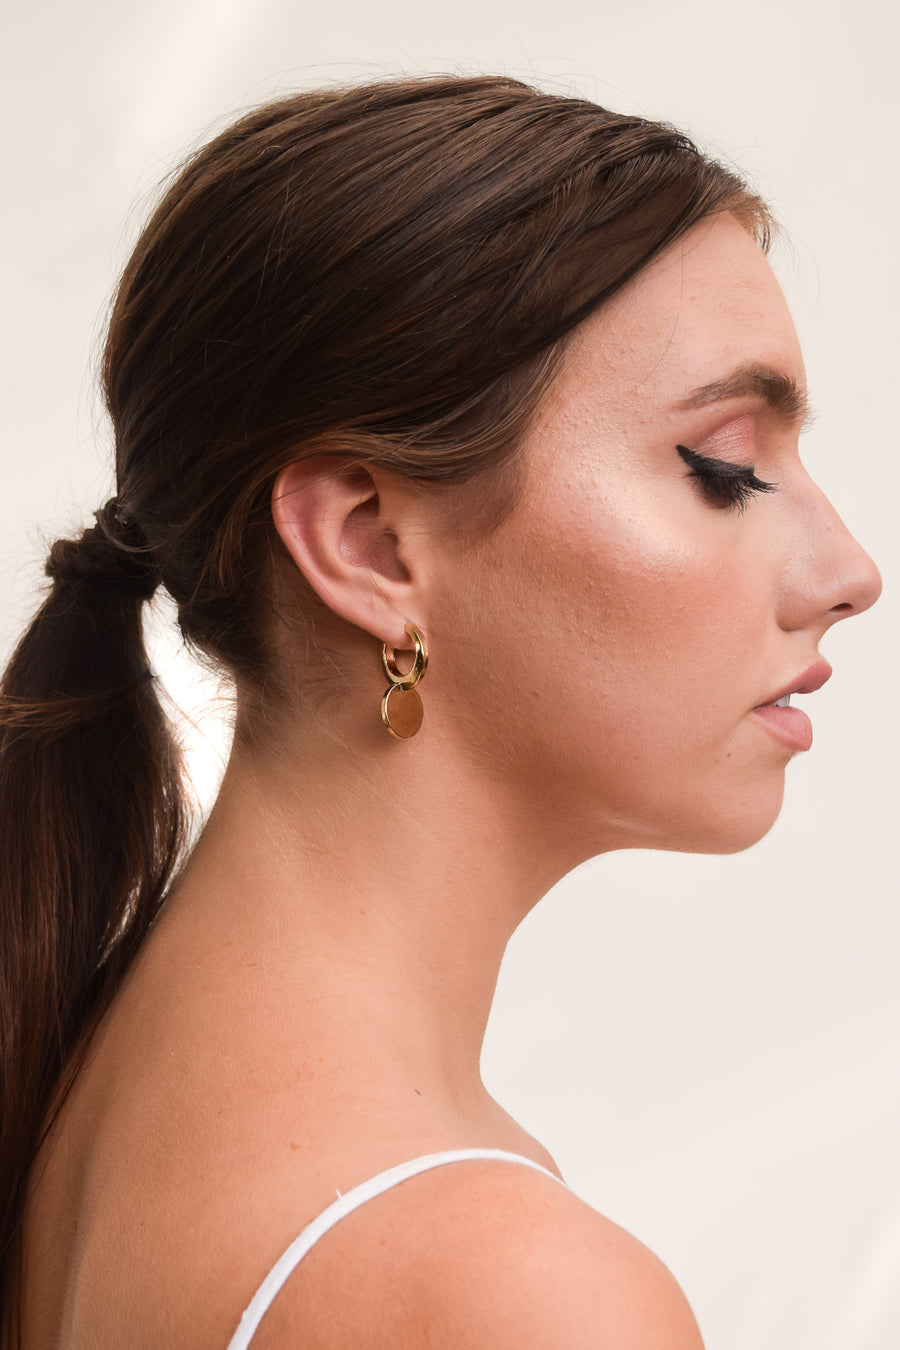 Cycle earring on model. 14k yellow gold earring with a modern circular design. Handmade by local jewelry designer, Nina Berenato, in Austin, Texas.